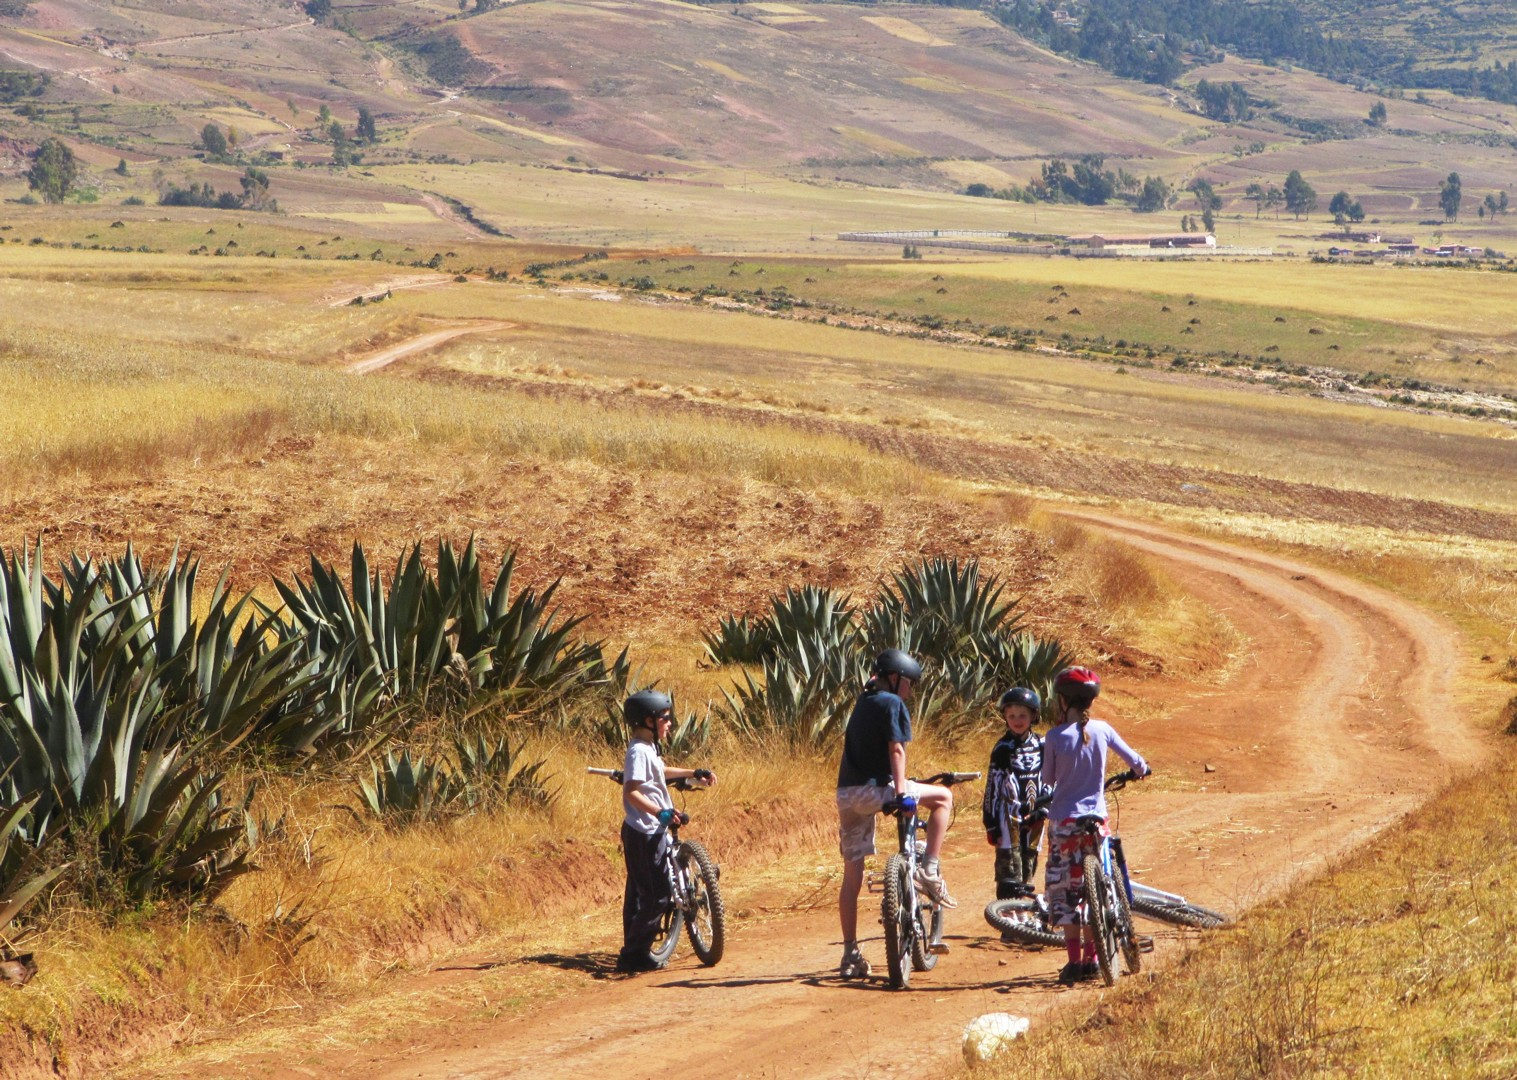 machu-picchu-peru-family-cycling-holiday-skedaddle.JPG - Peru - Andean Adventure - Guided Family Cycling Holiday - Family Cycling